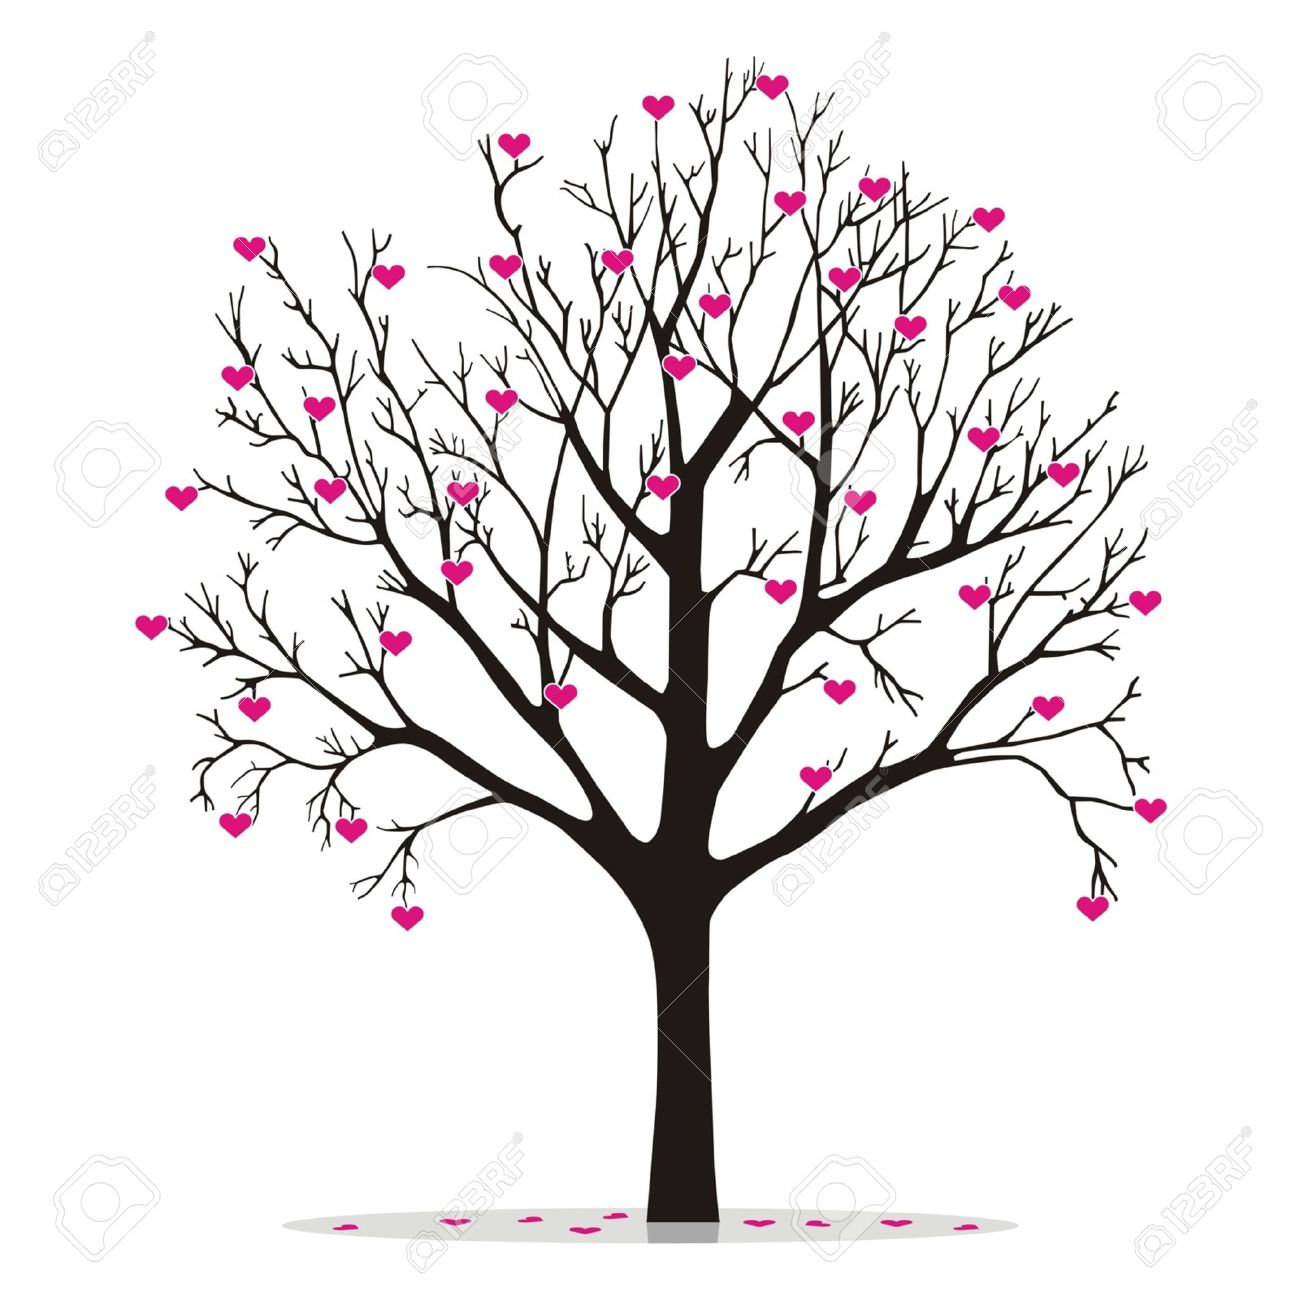 Clipart hearts in tree image transparent library 19,971 Heart Tree Stock Illustrations, Cliparts And Royalty Free ... image transparent library